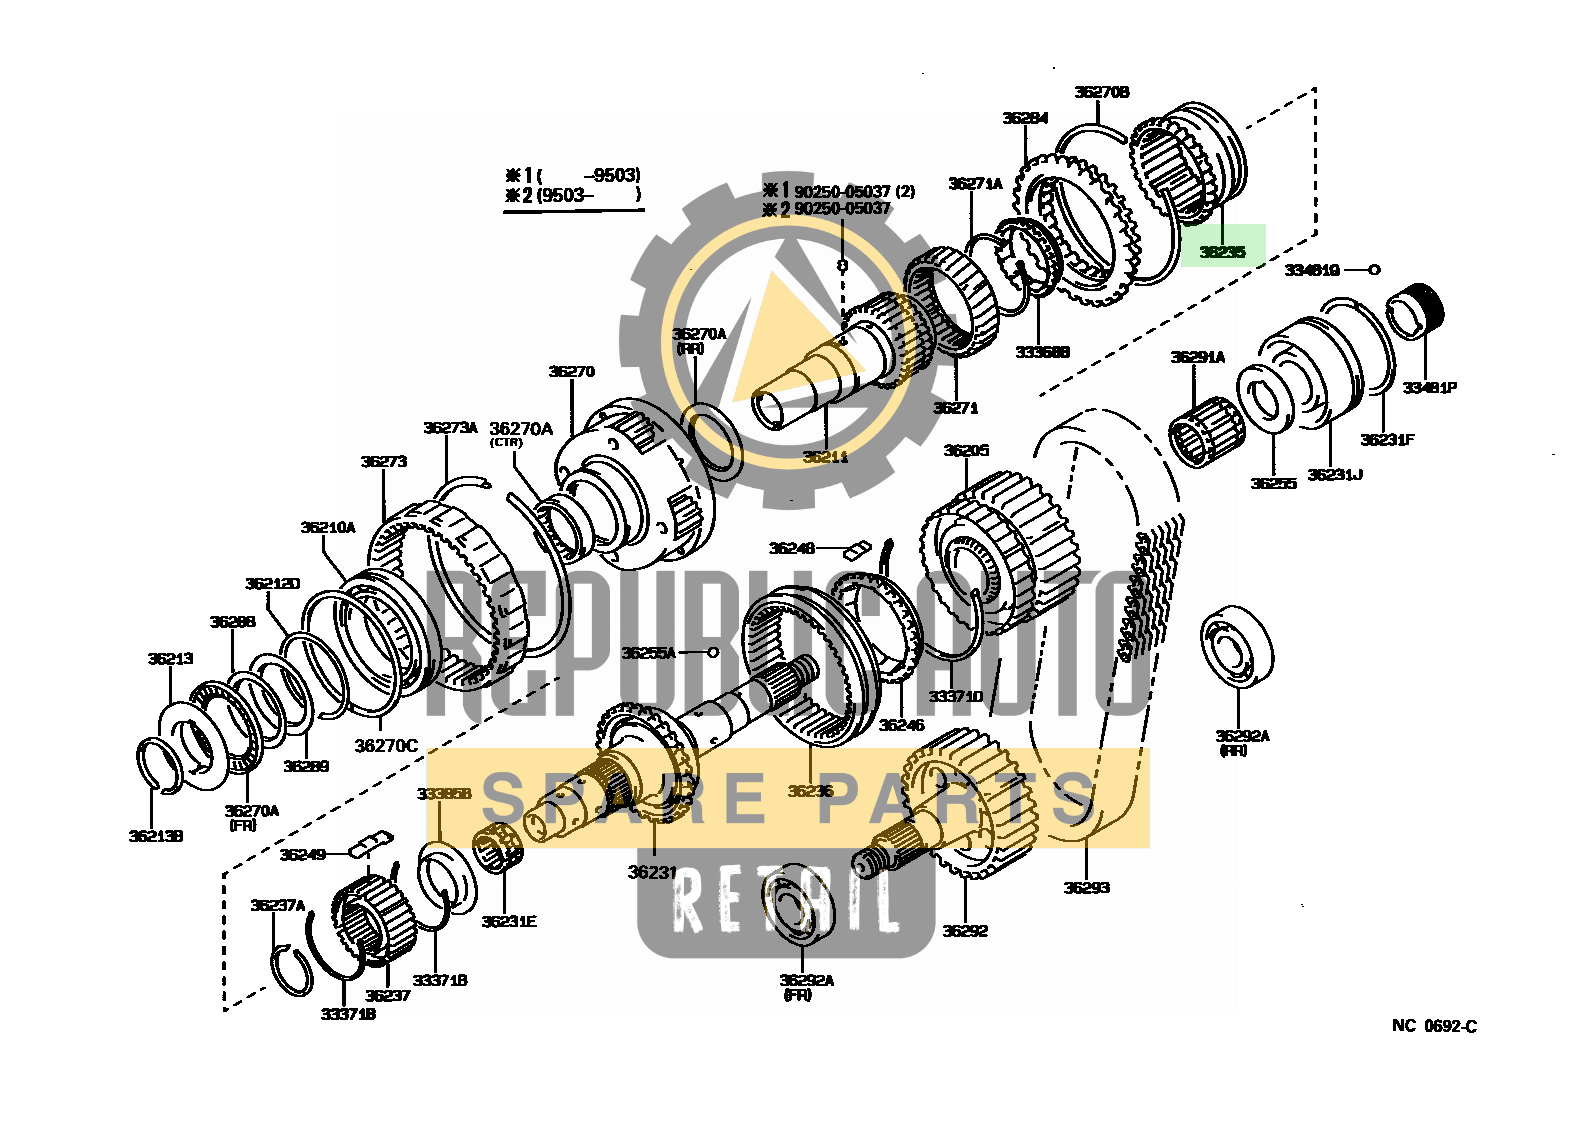 Part number: 36235-35021 	4-RUNNER TRUCK (JPP) 671450 (RN101L-TRLDEA) / TRANSFER GEAR